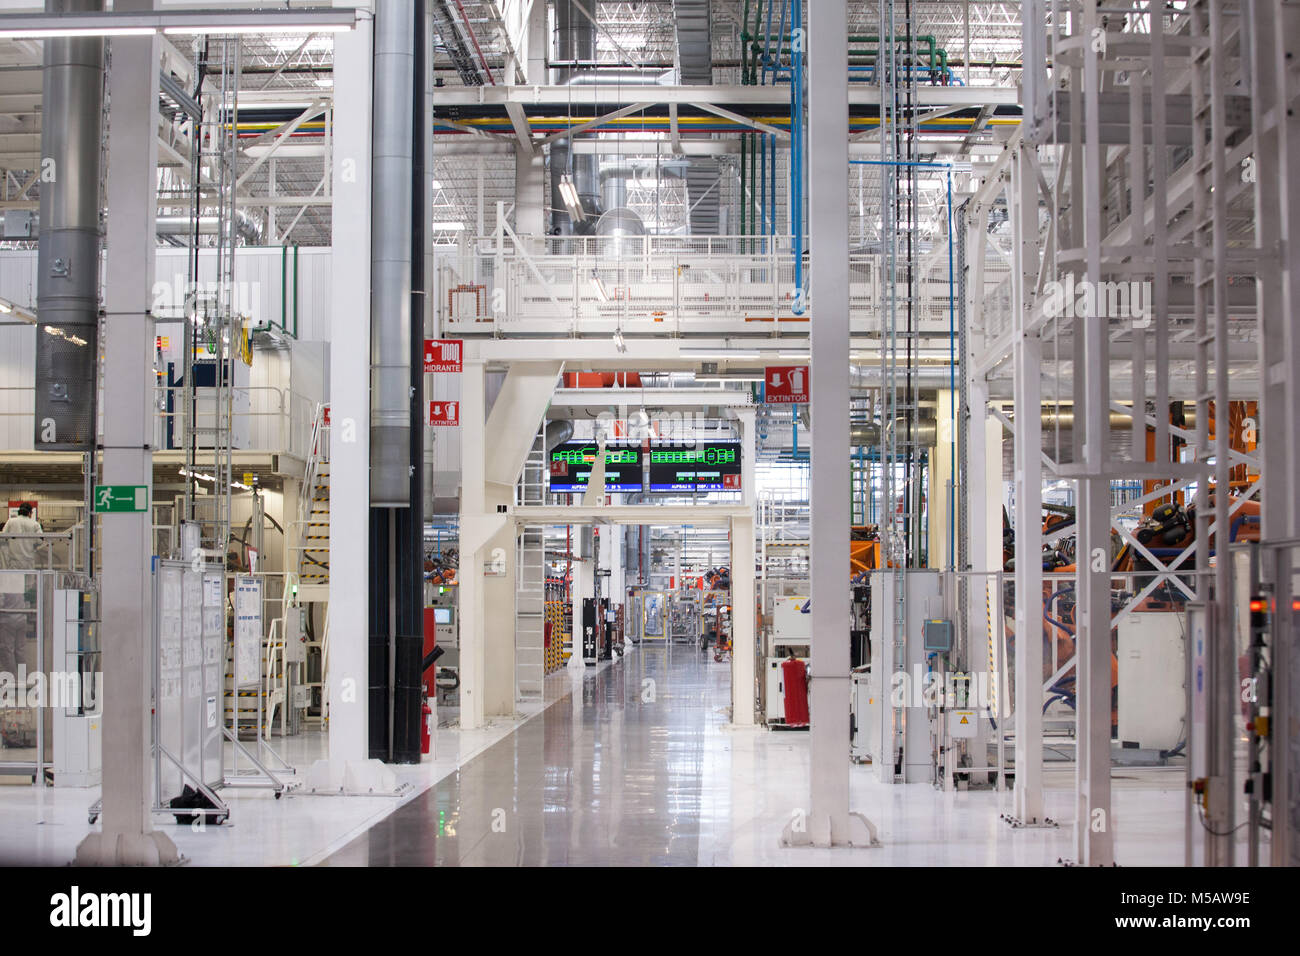 The Golf vehicle section of the Volkswagen factory in Puebla, Mexico, Wednesday, January 21, 2015. The plant is Stock Photo